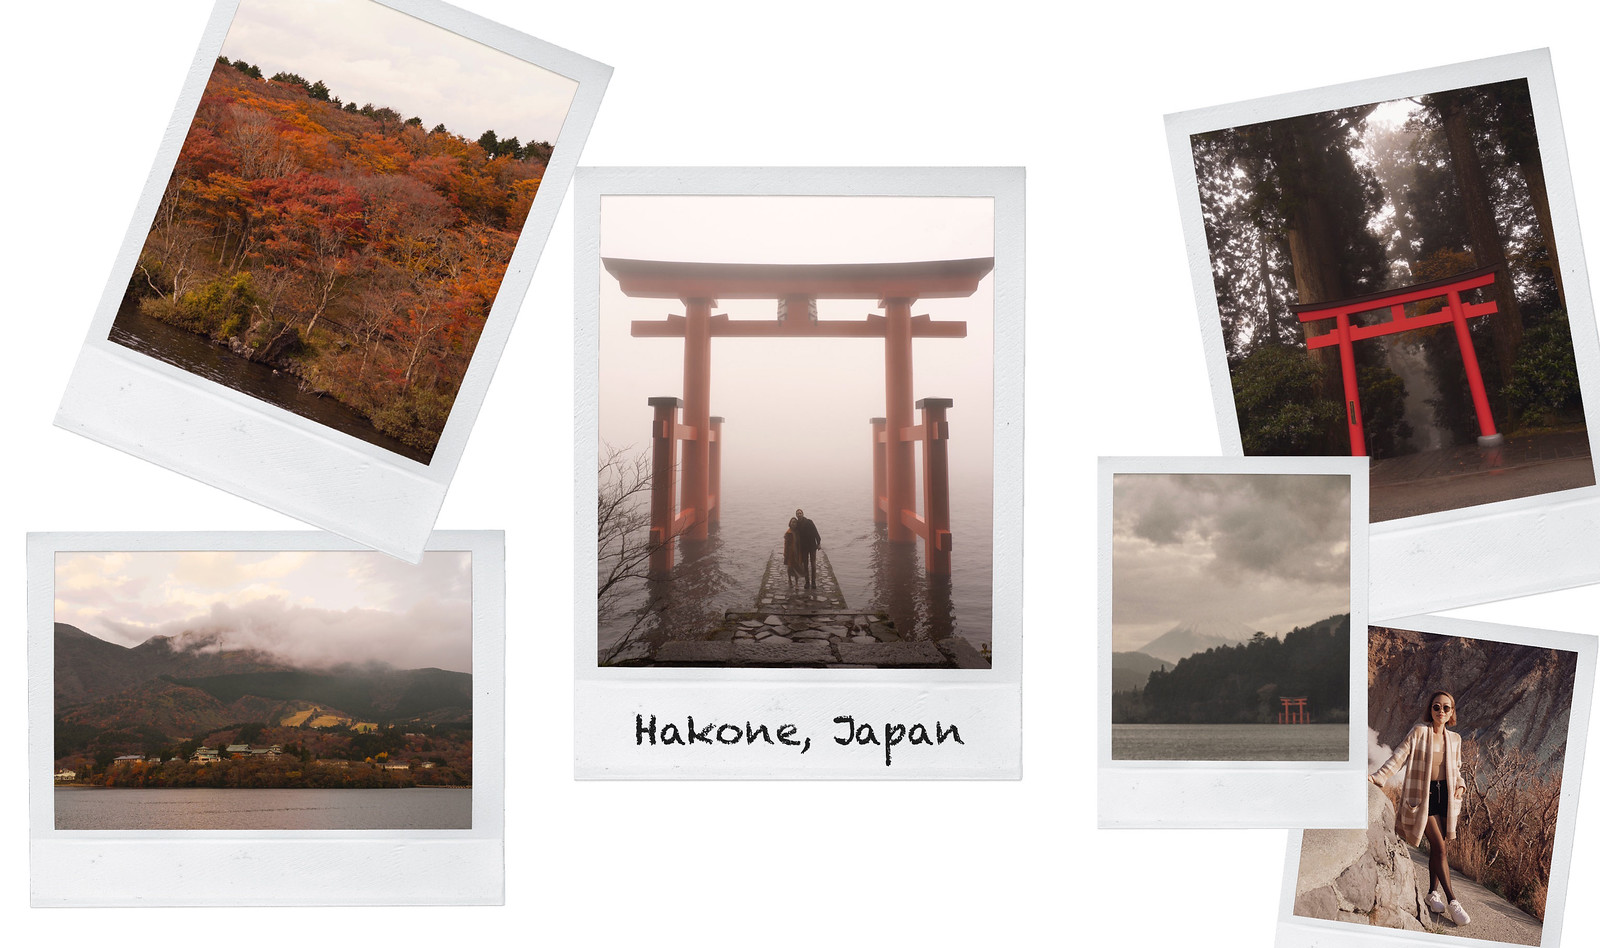 01hakone-japan-fuji-travel